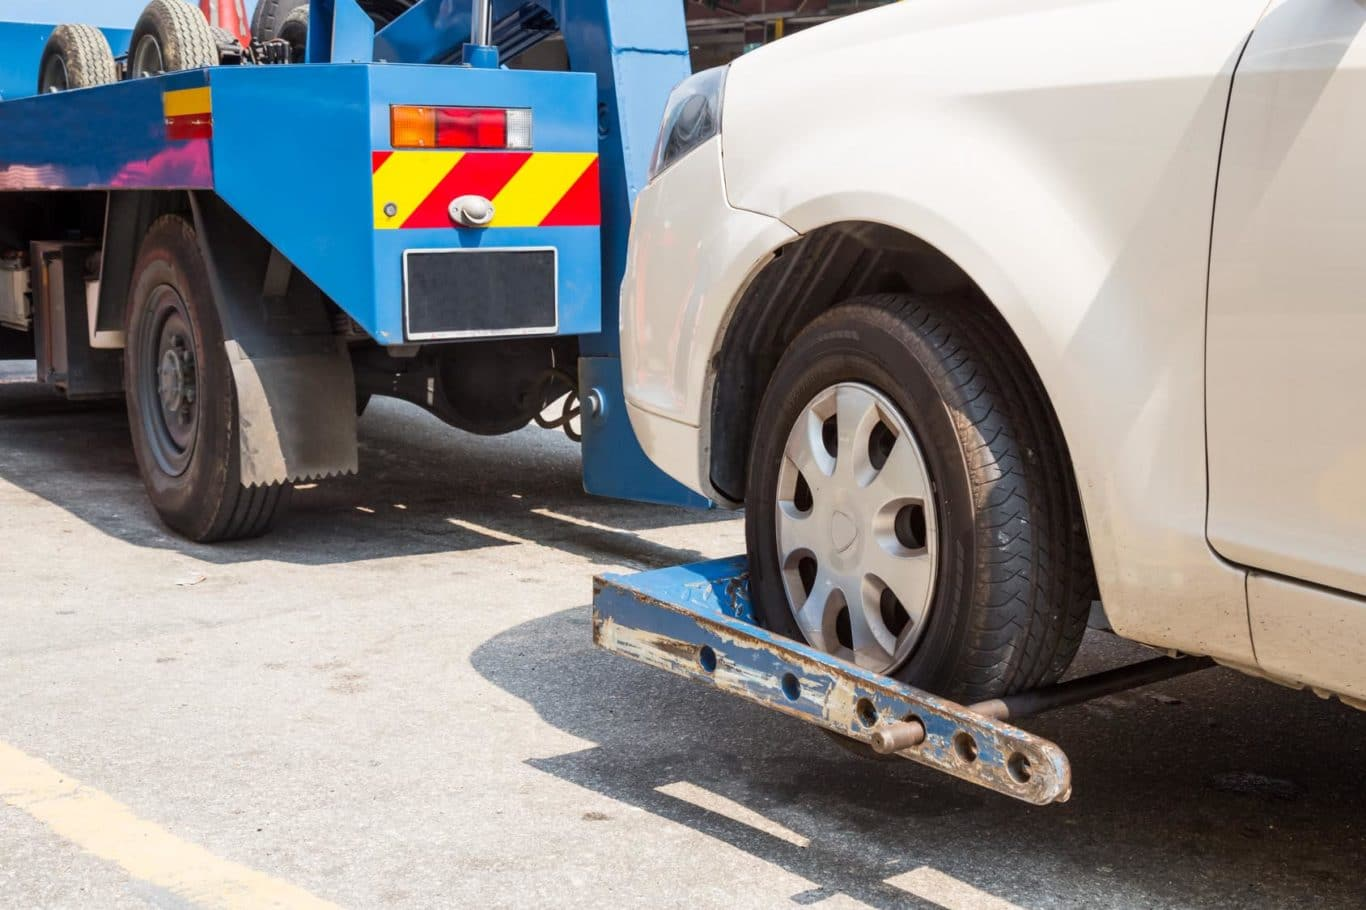 Deansgrange expert Towing services